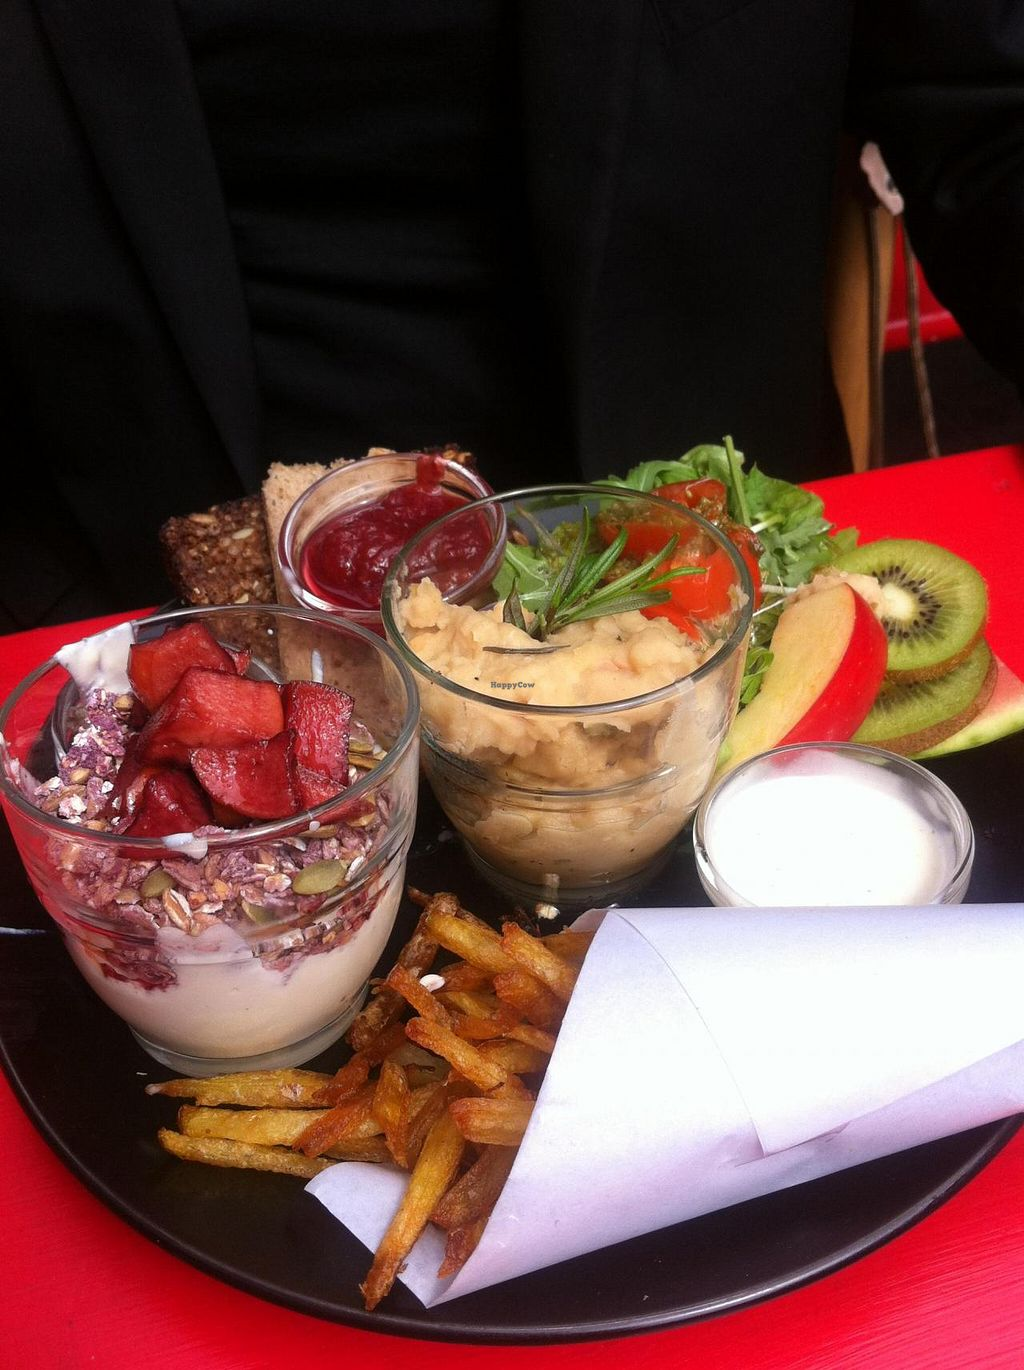 """Photo of Harbo Bar  by <a href=""""/members/profile/Karin%20Elrod"""">Karin Elrod</a> <br/>Delicious vegan brunch <br/> June 18, 2014  - <a href='/contact/abuse/image/46562/72251'>Report</a>"""